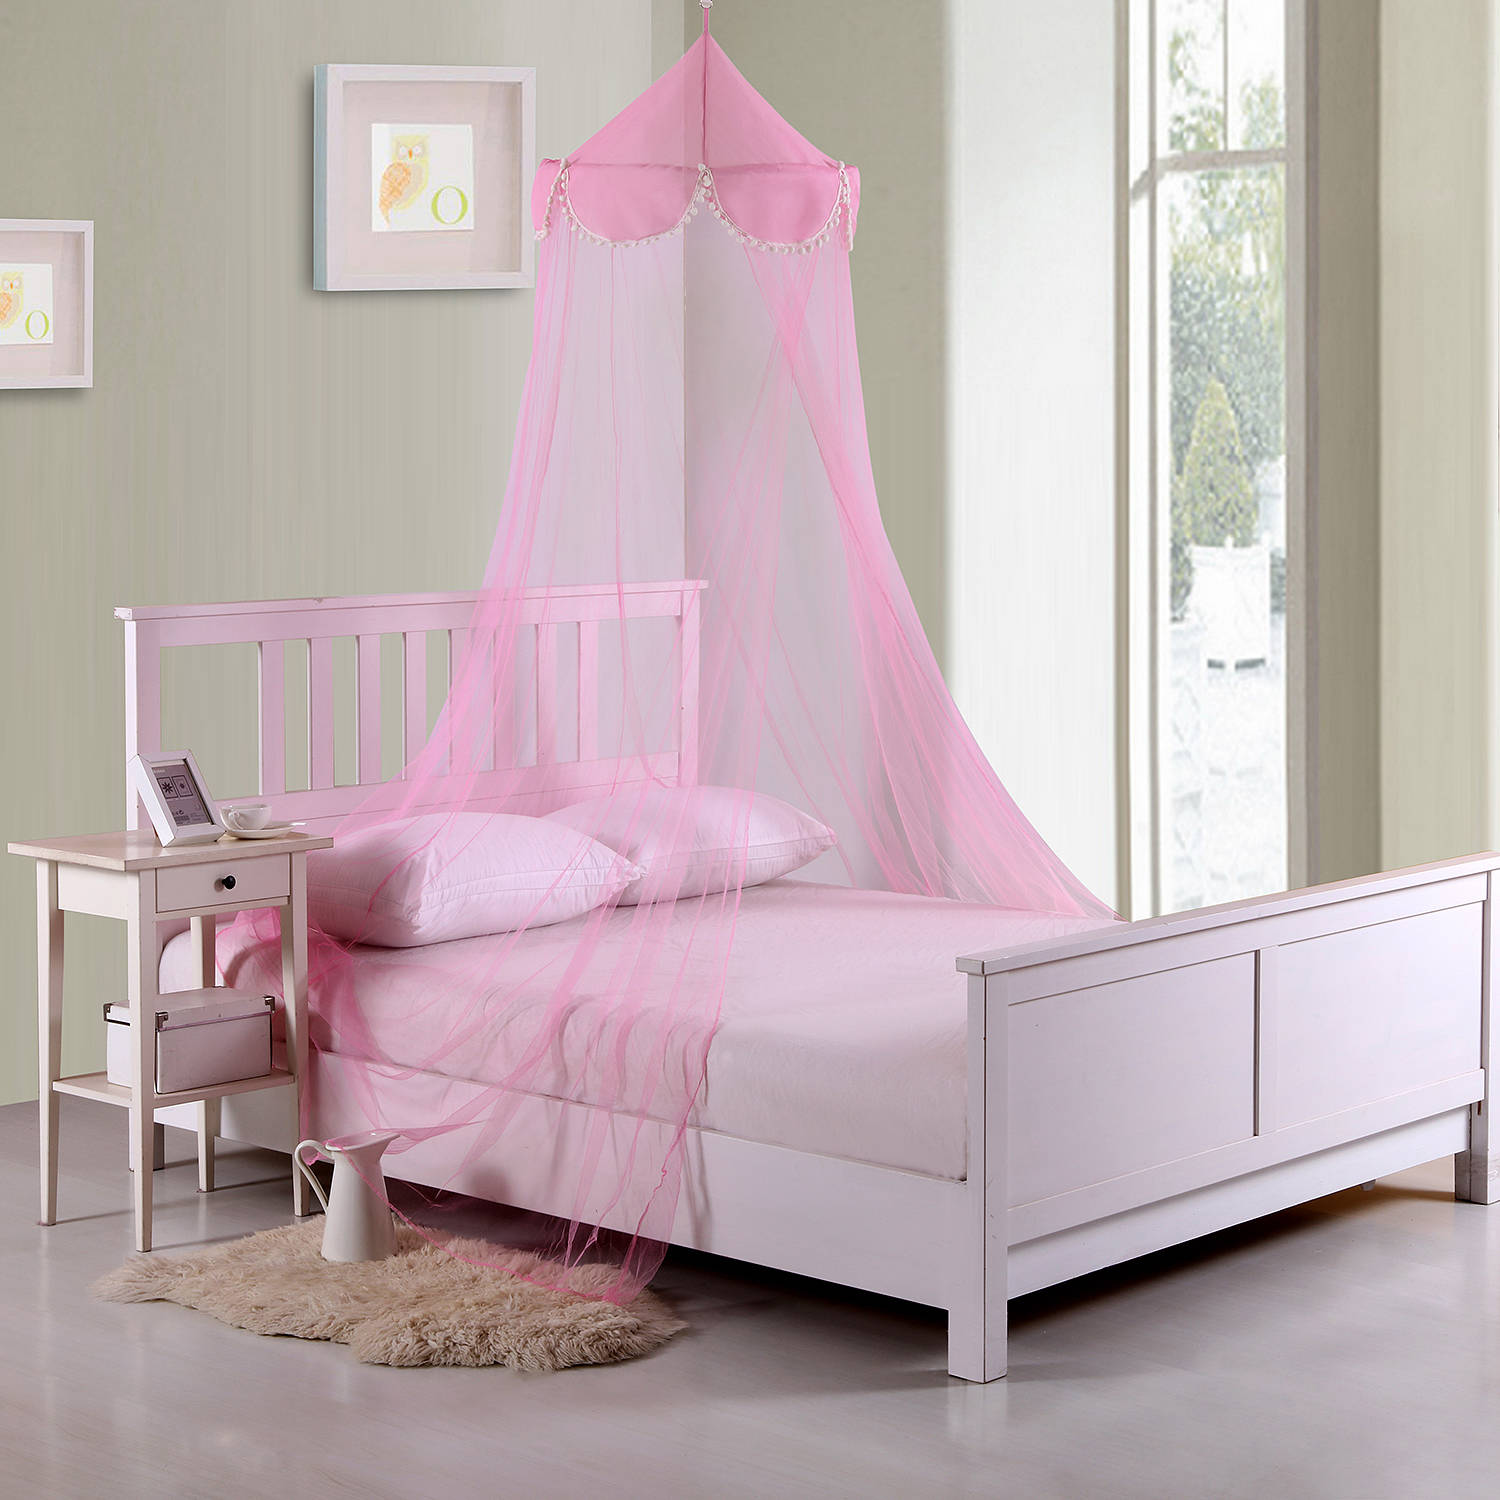 Pom Pom Kids' Collapsible Hoop Sheer Bed Canopy